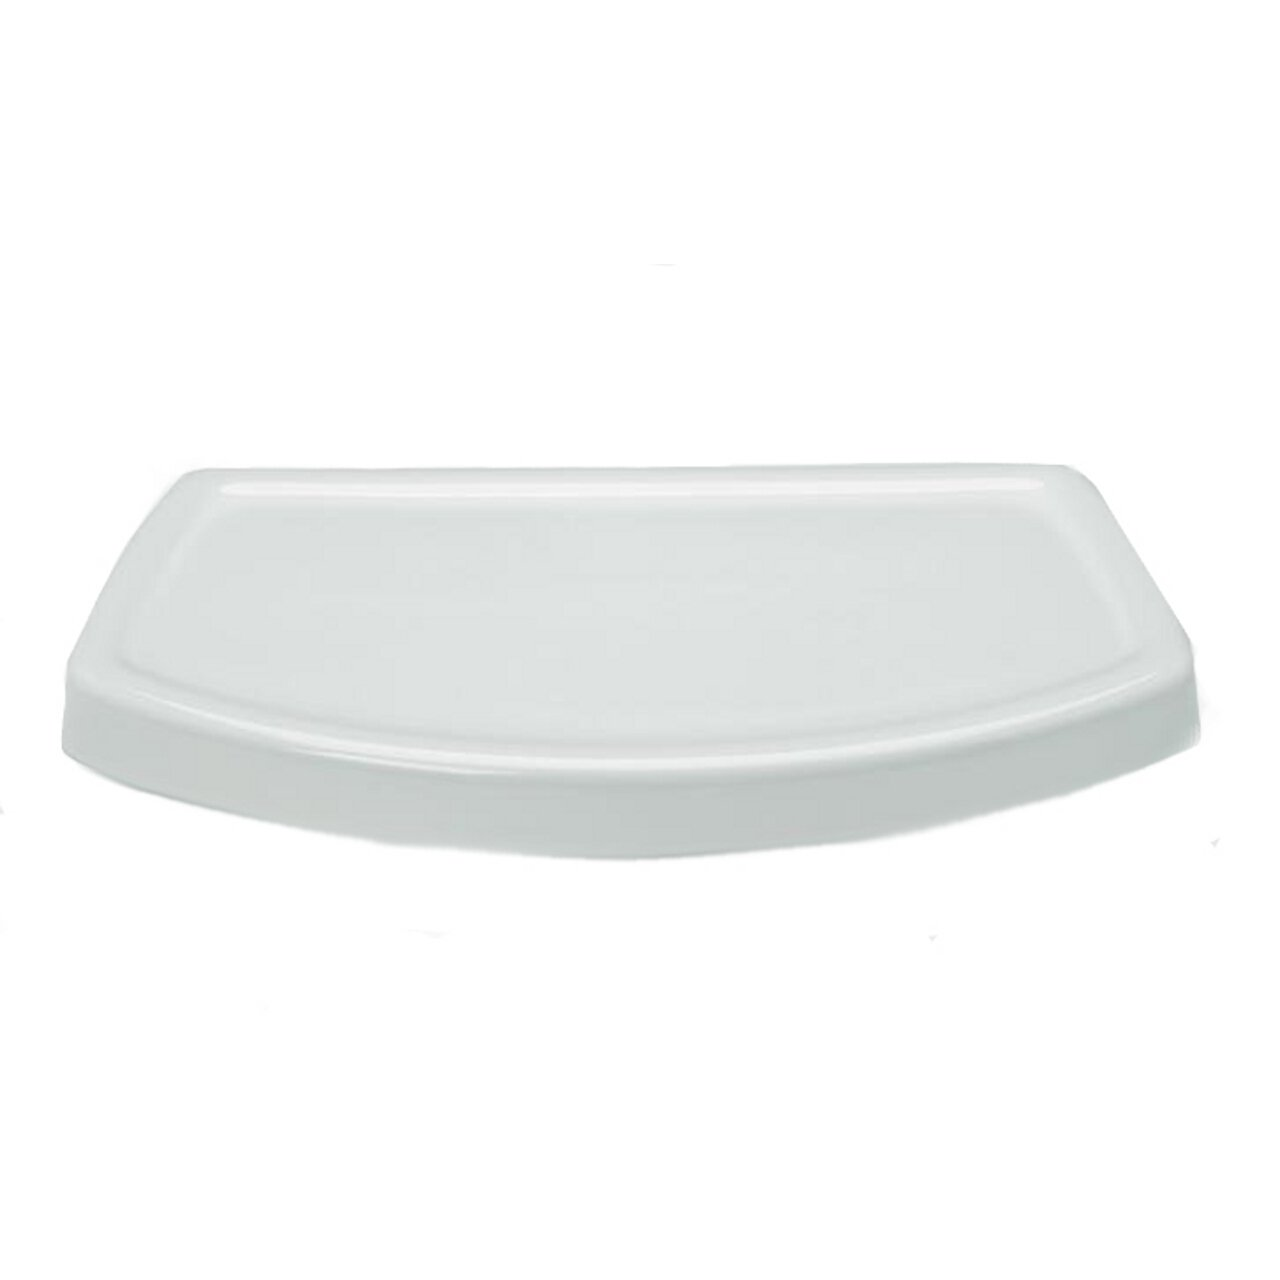 """American Standard 735122-400.020 Cadet 10"""" Toilet Lid for Right-Height and Compact Models, White"""